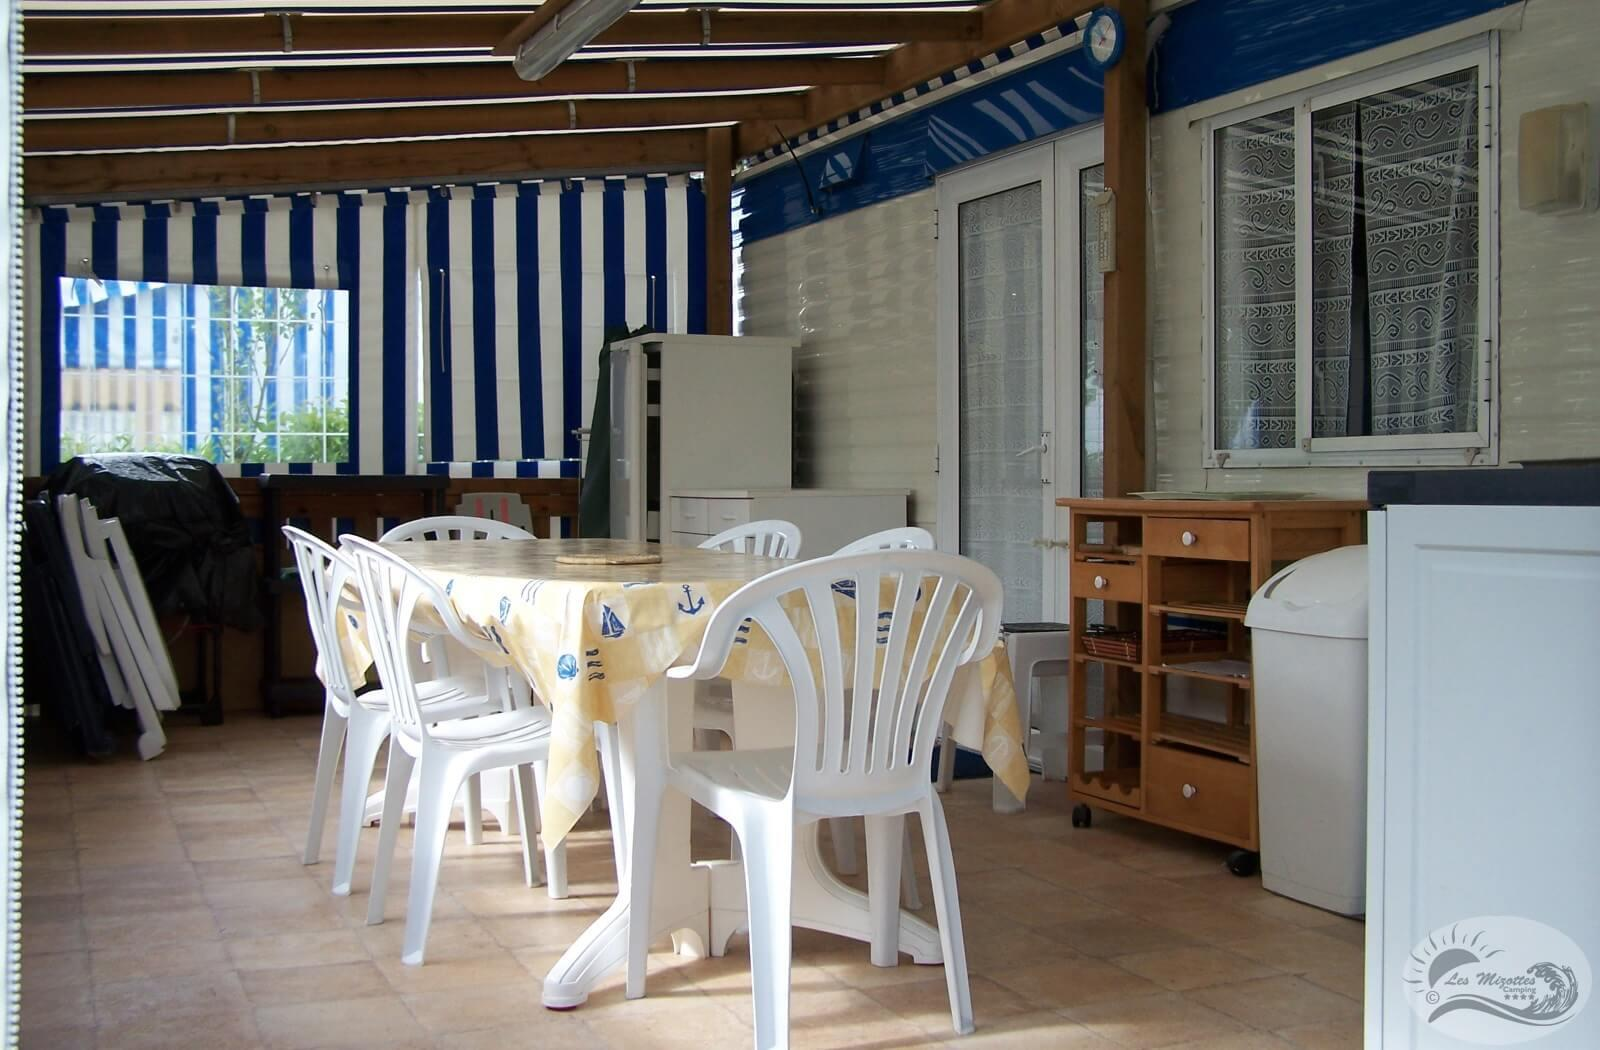 Location - Mobil-Home Eco 2 Chambres <25 M² - Camping Les Mizottes